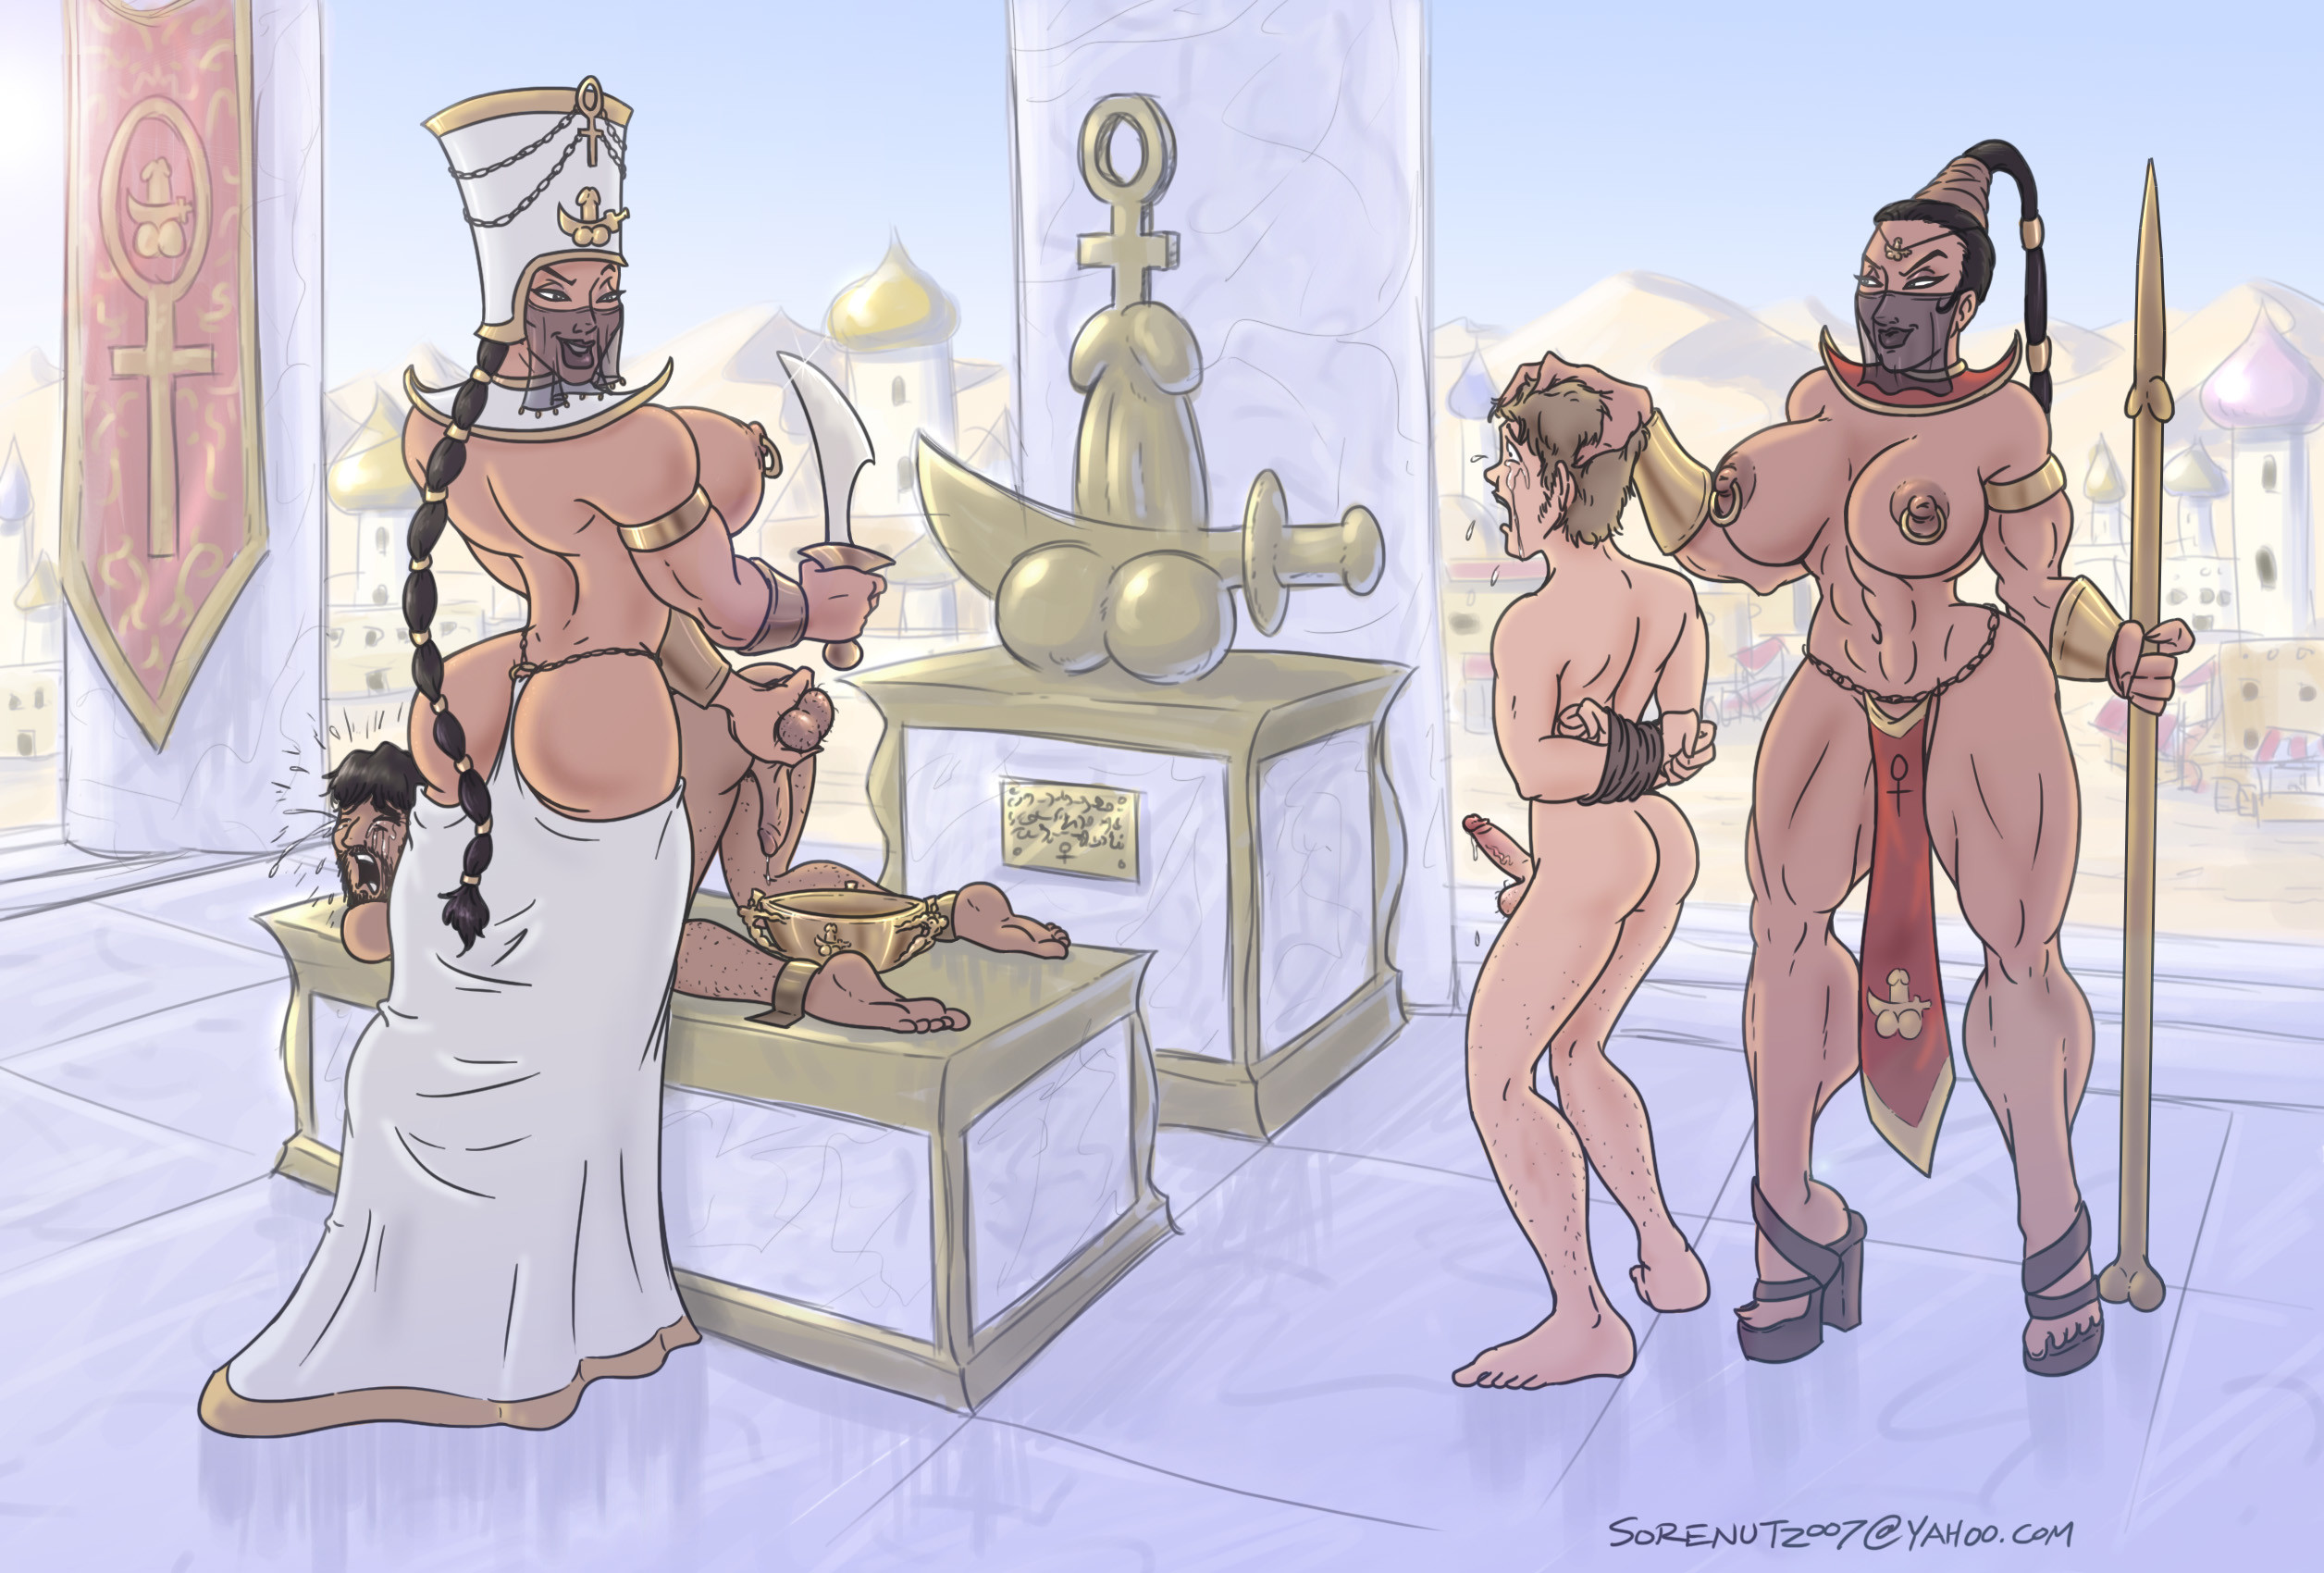 castration-illustration-16